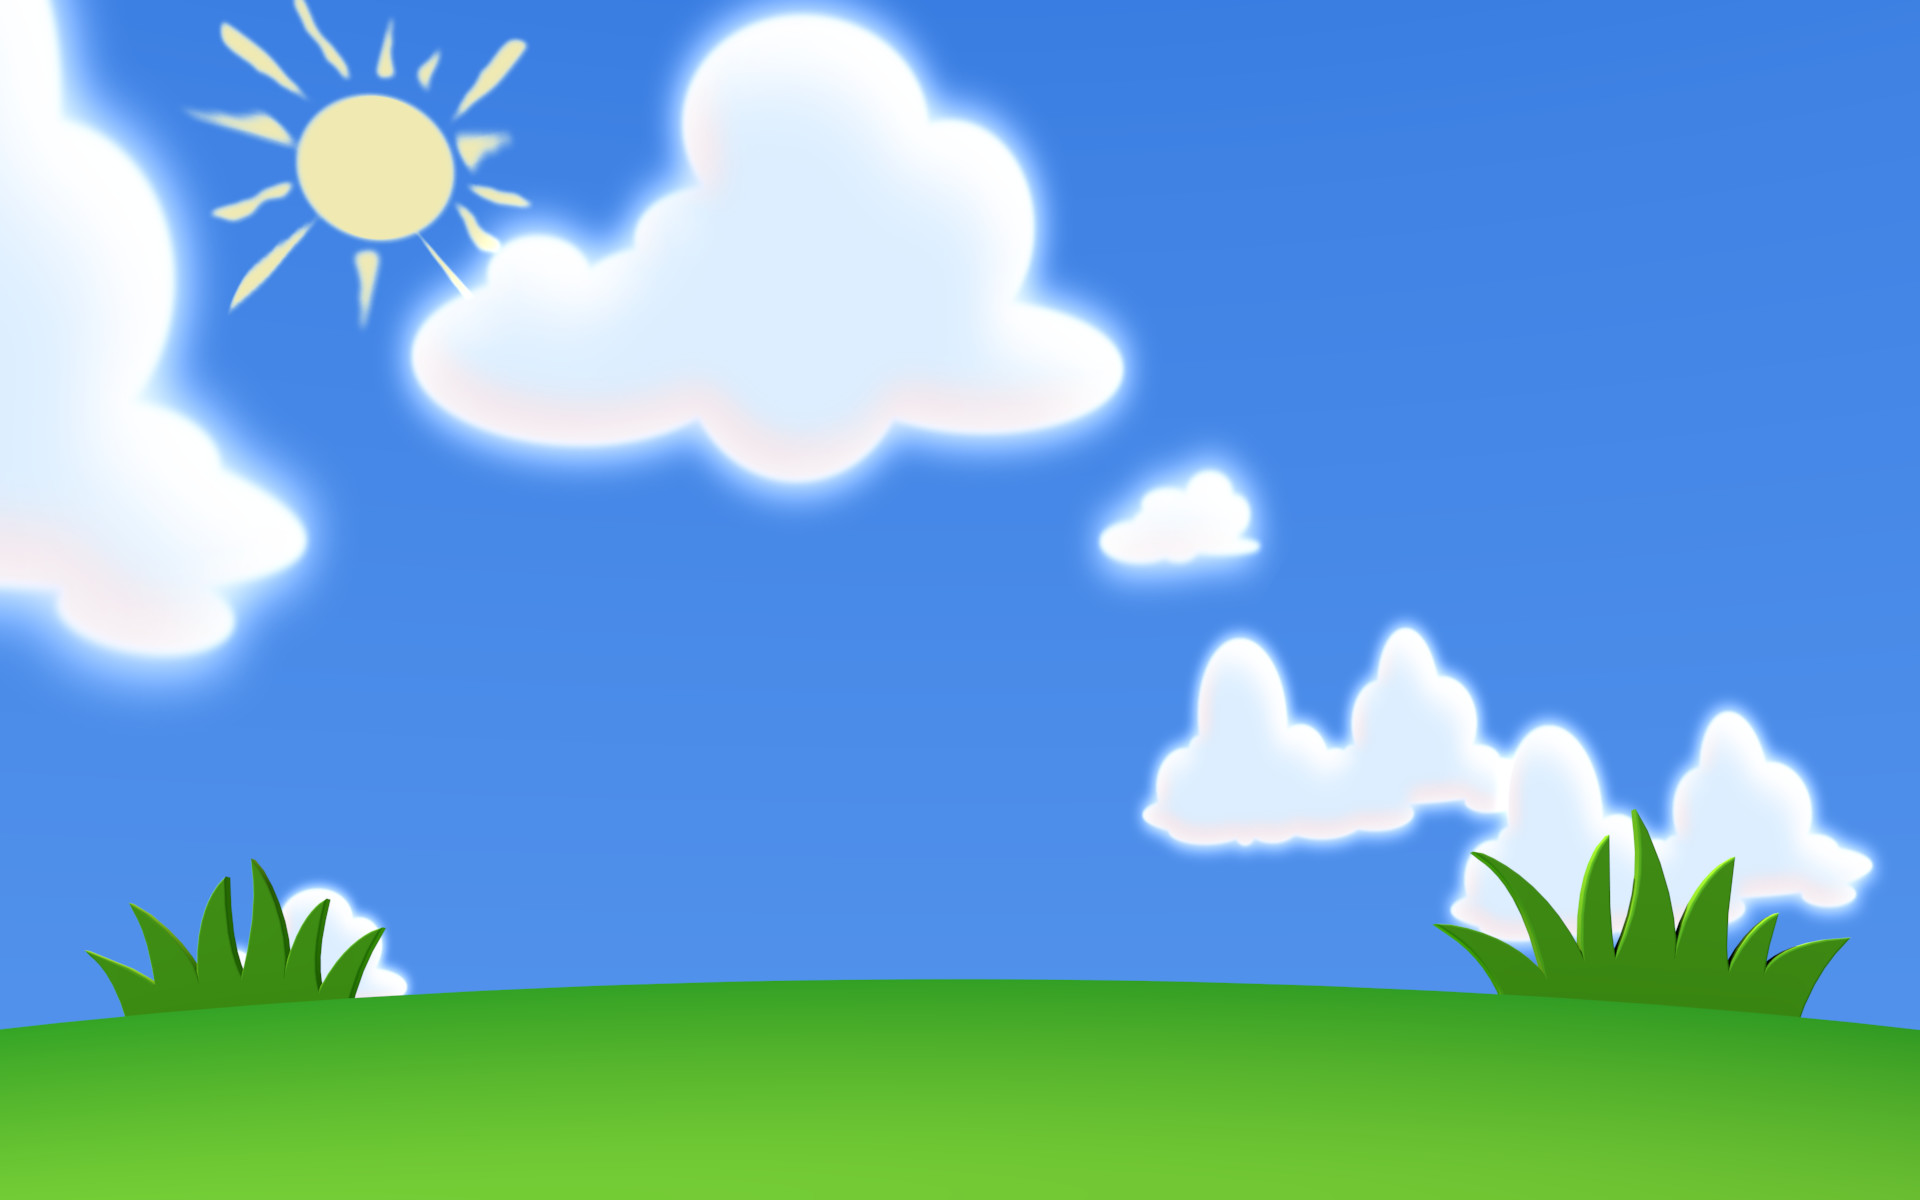 Clipart photo background hd